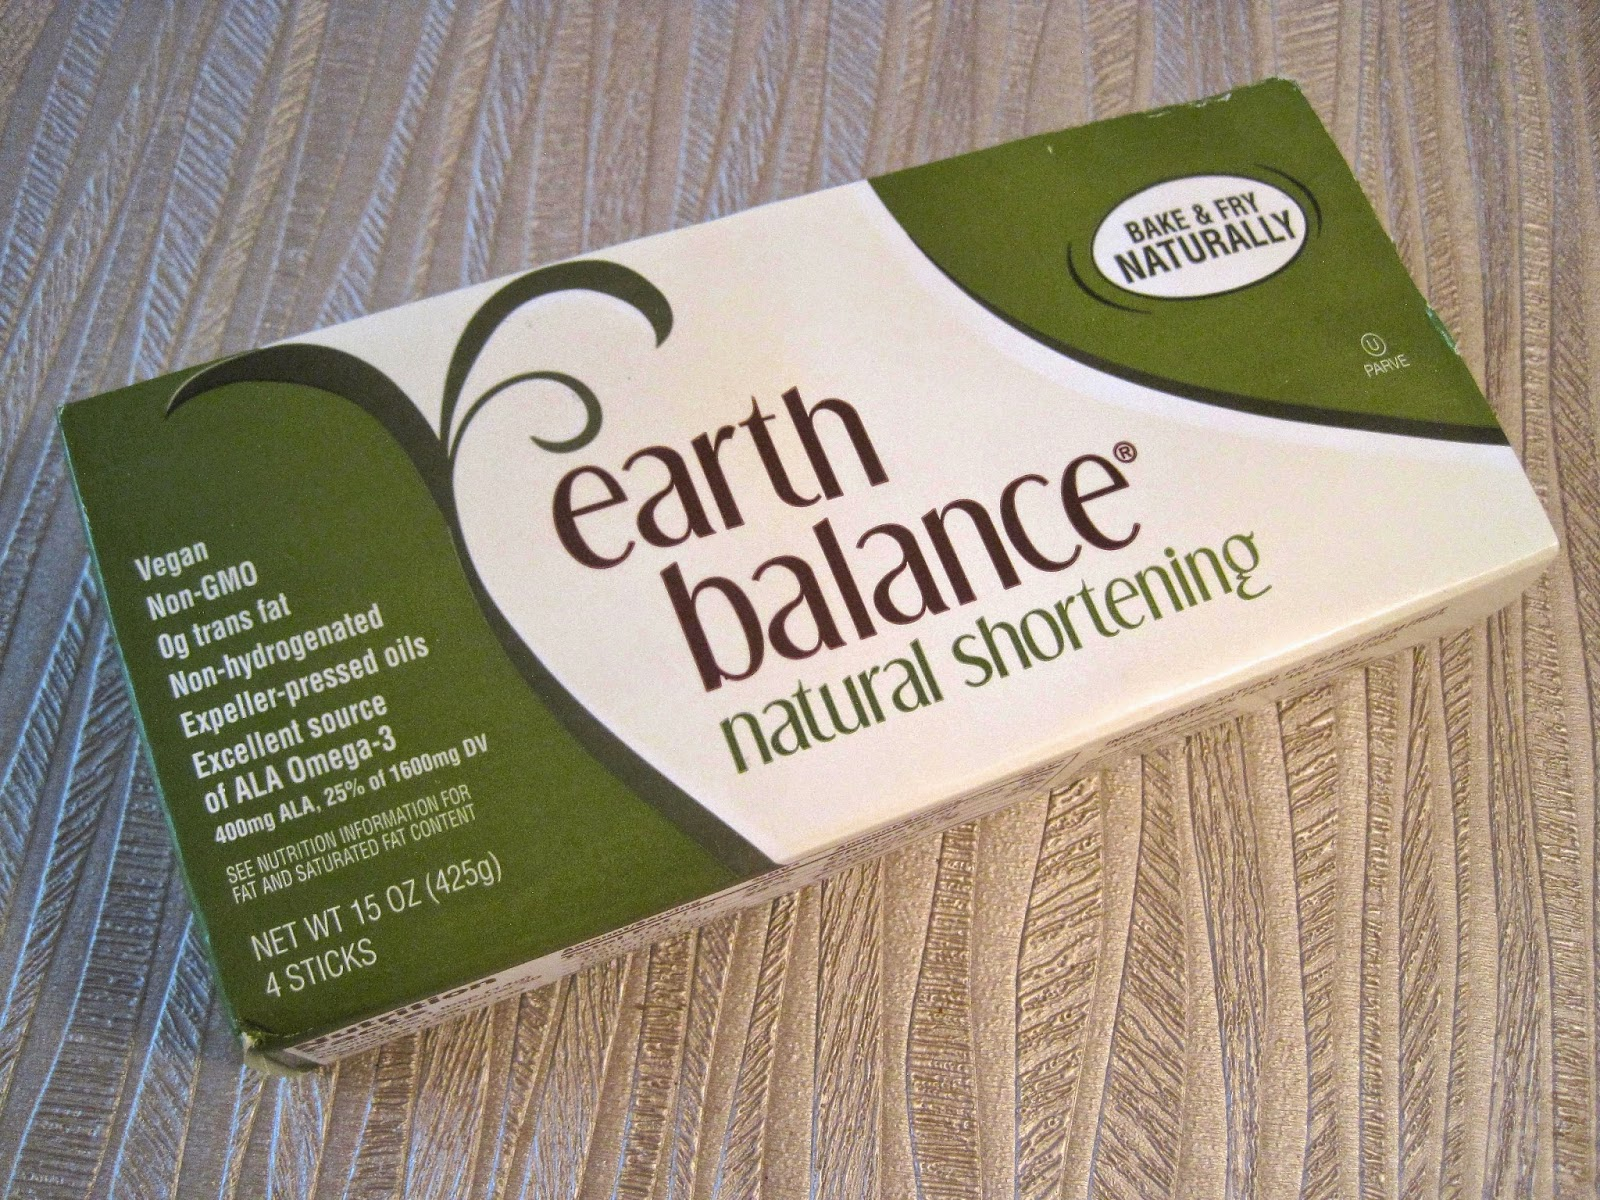 Earth Balance Natural Shortening Vegan - Veega